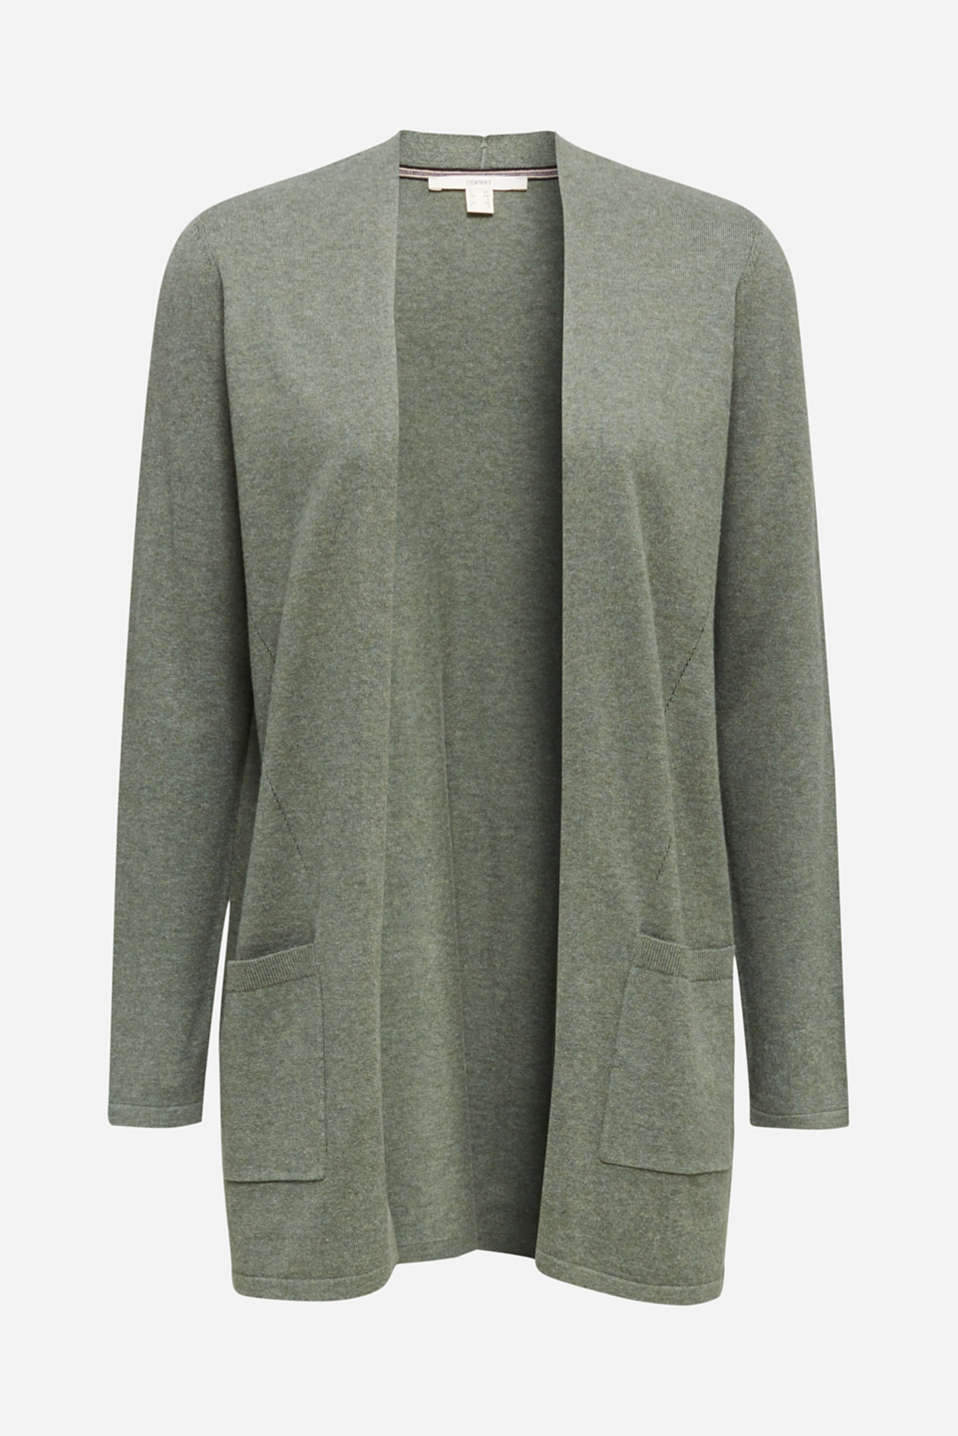 With linen: open cardigan with open-work pattern details, KHAKI GREEN 5, detail image number 6